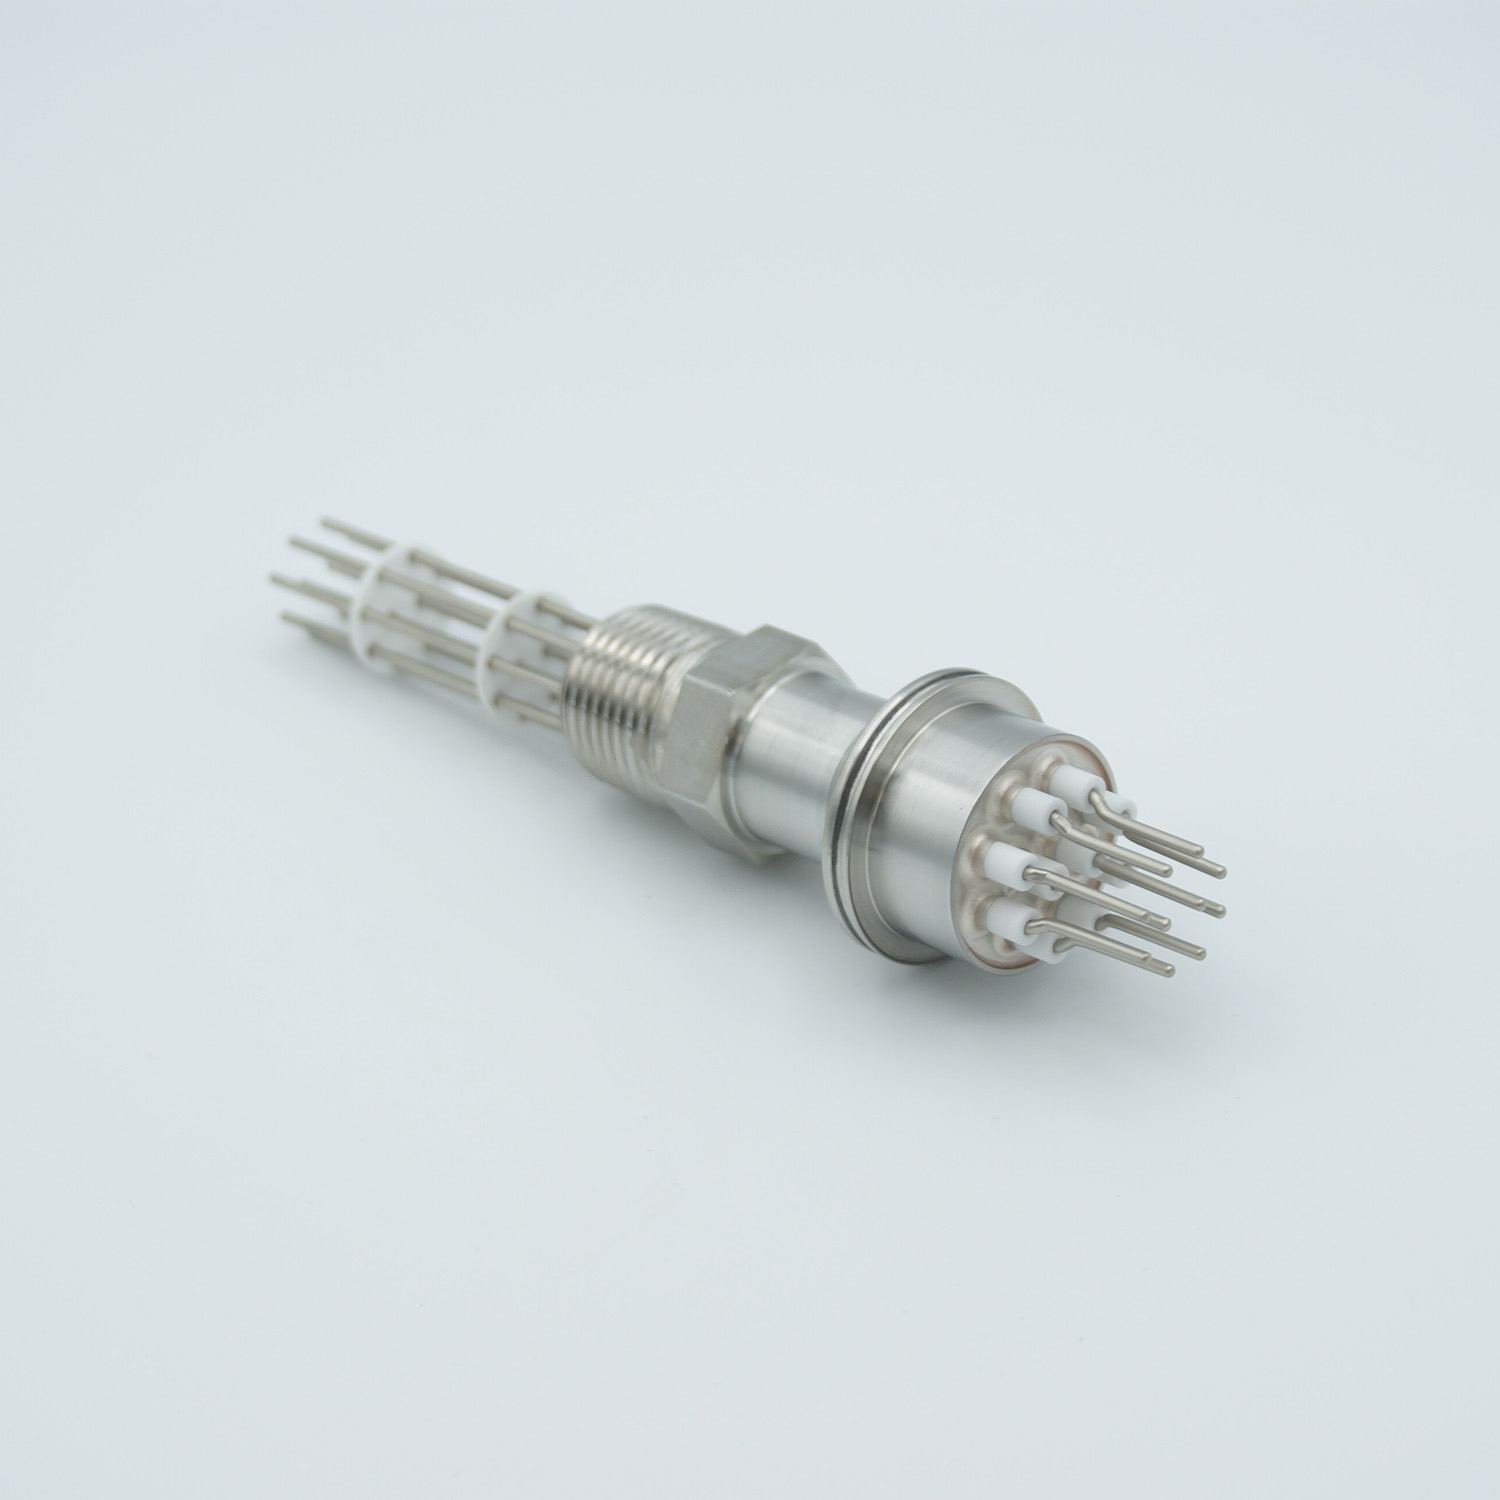 2 pair Thermocouple type-K feedthrough for push on connectors, 1/2